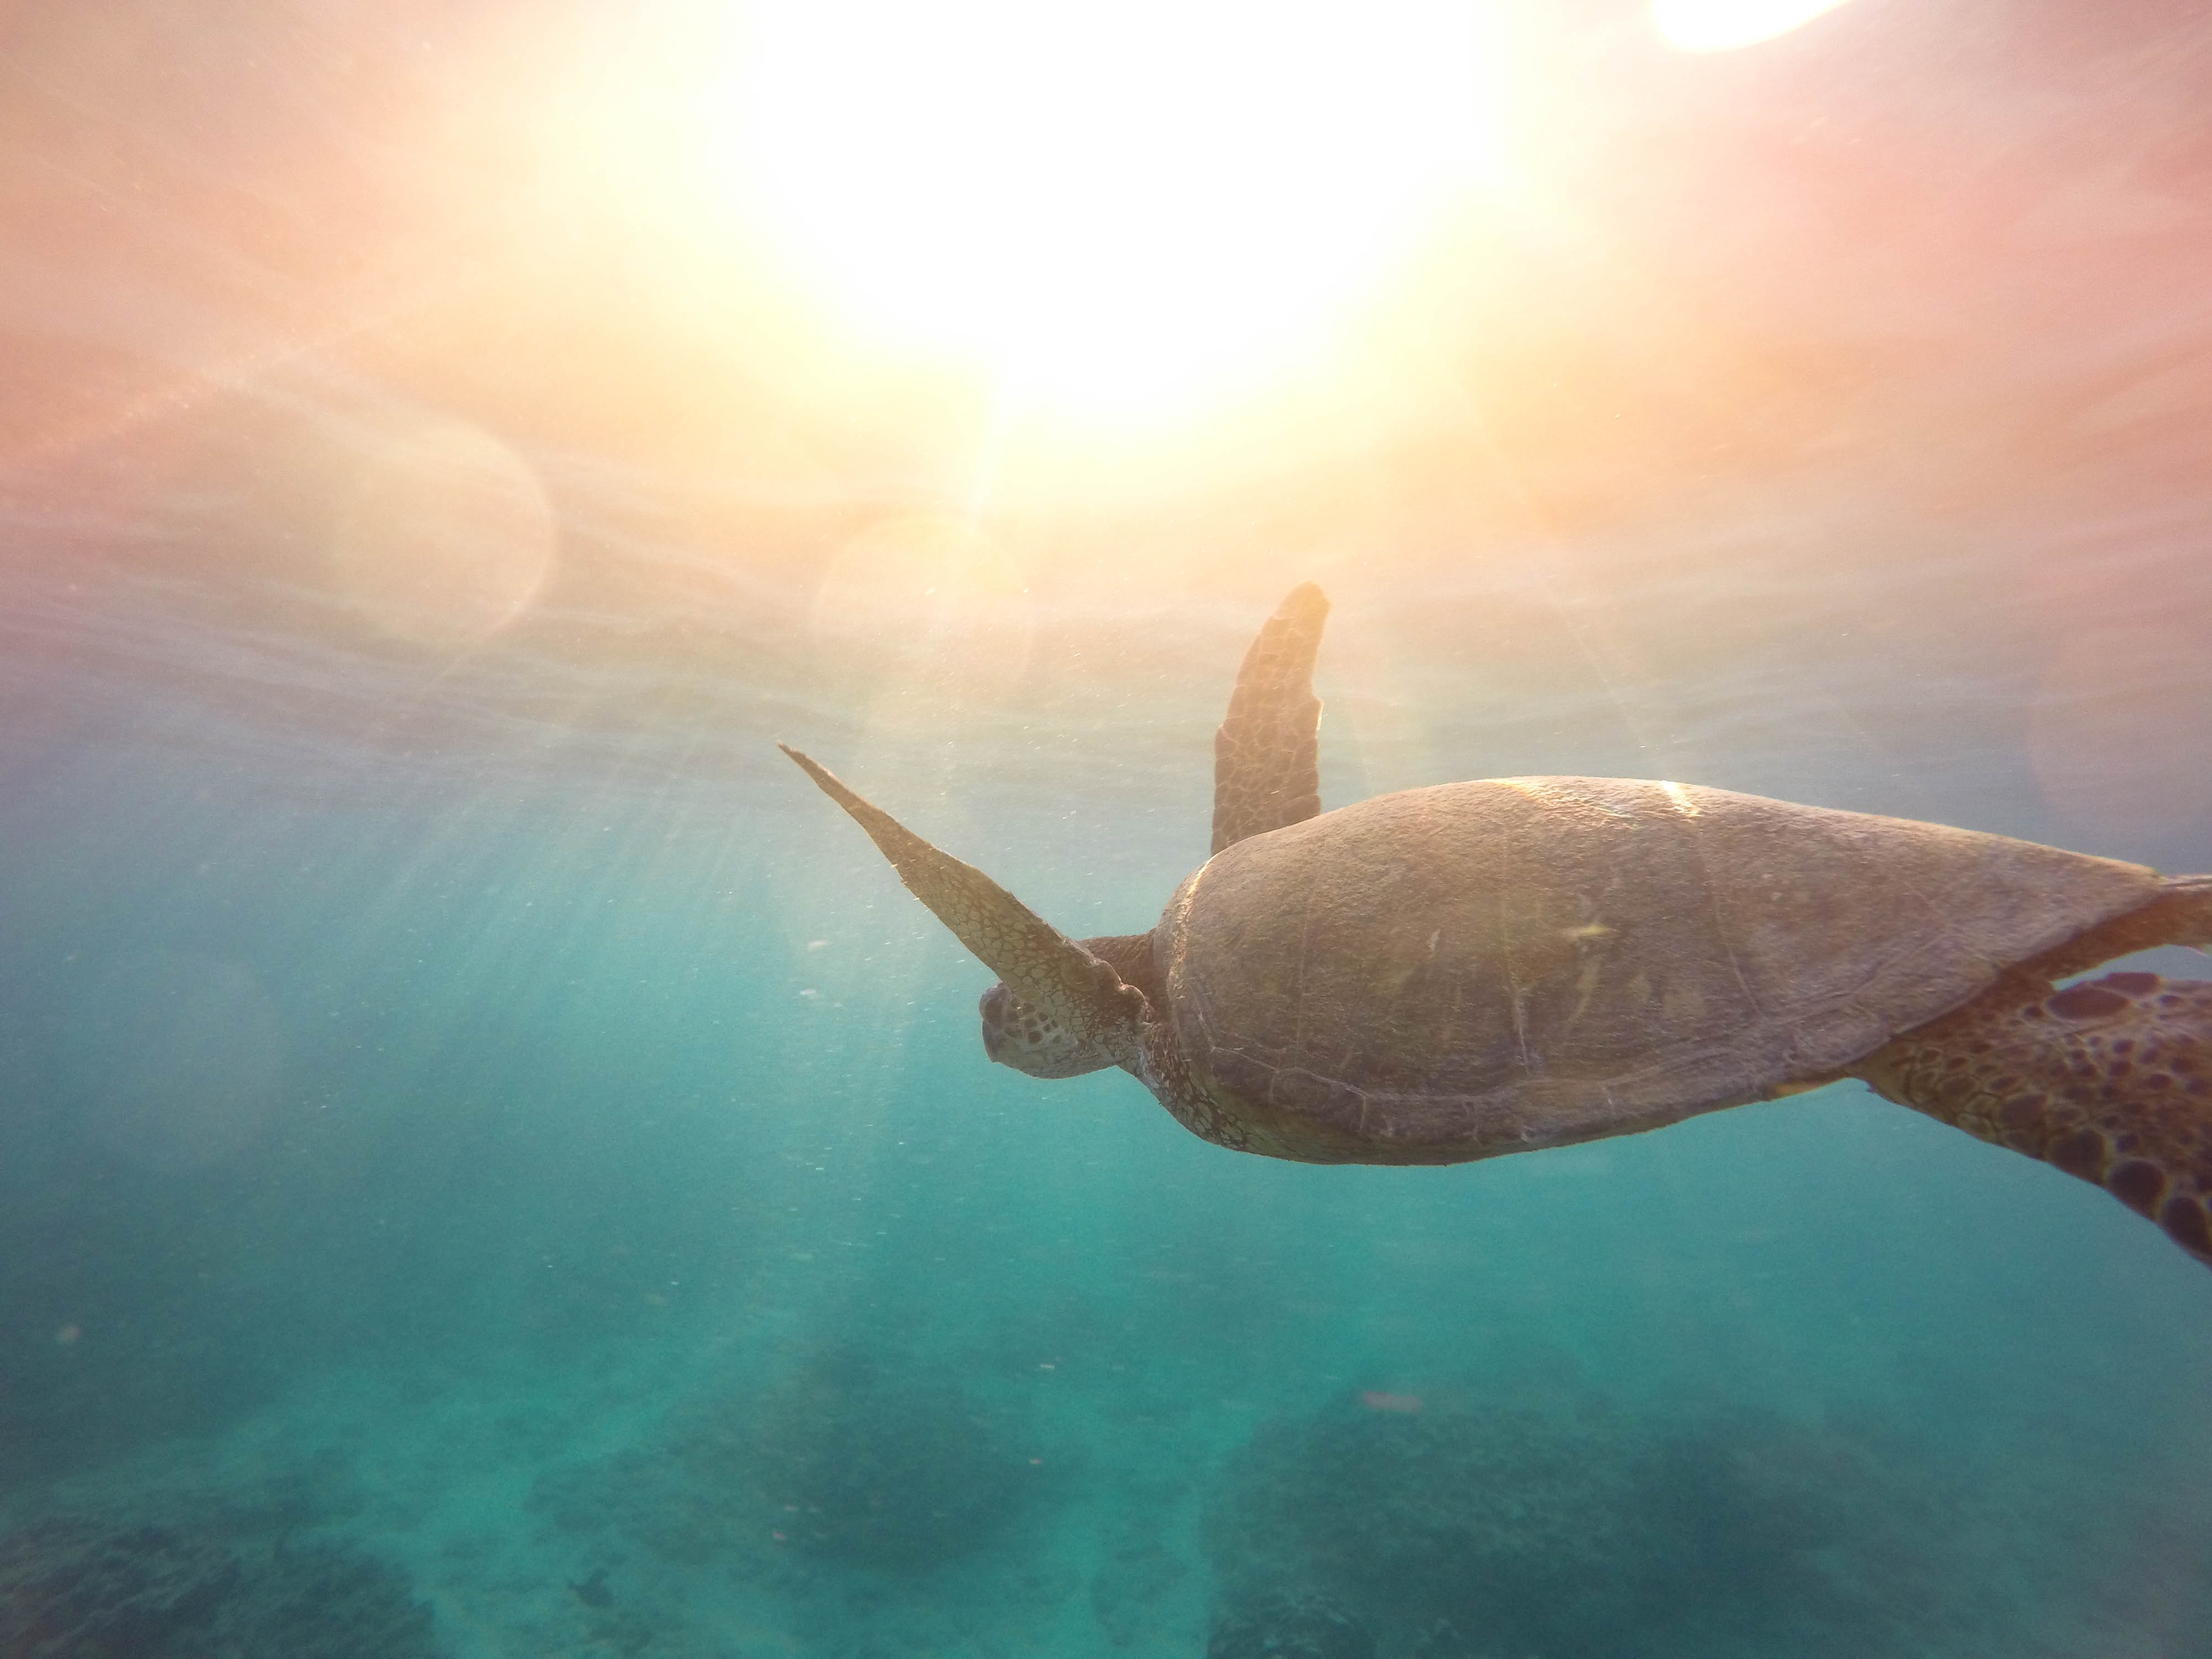 green turtle swimming on ocean